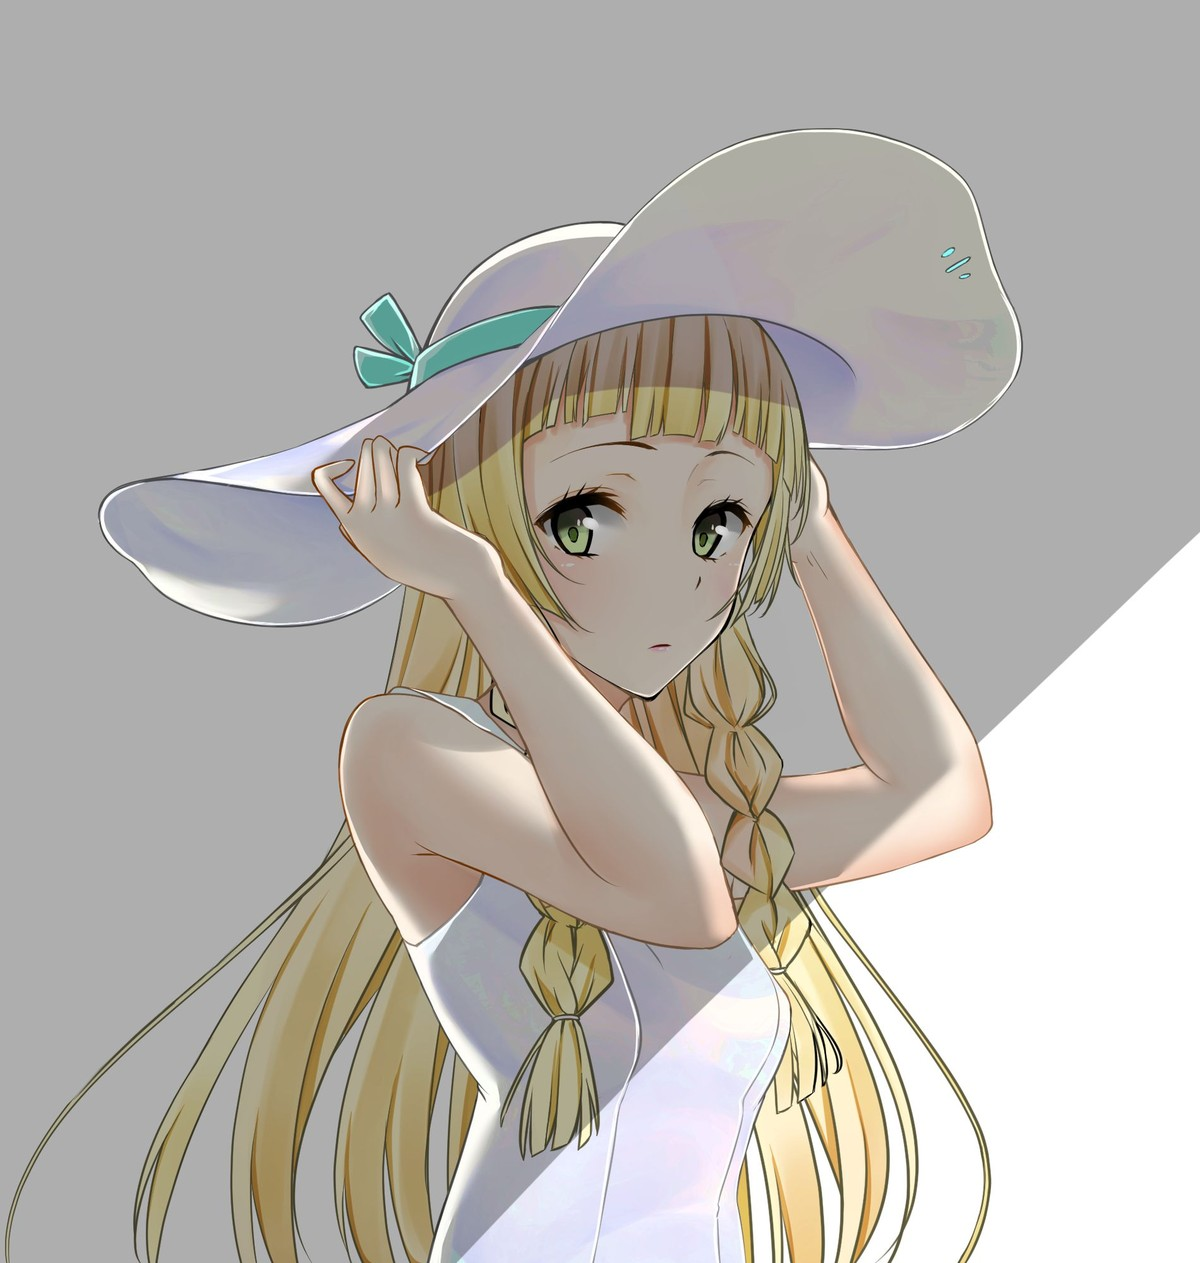 lillie_(pokemon)088